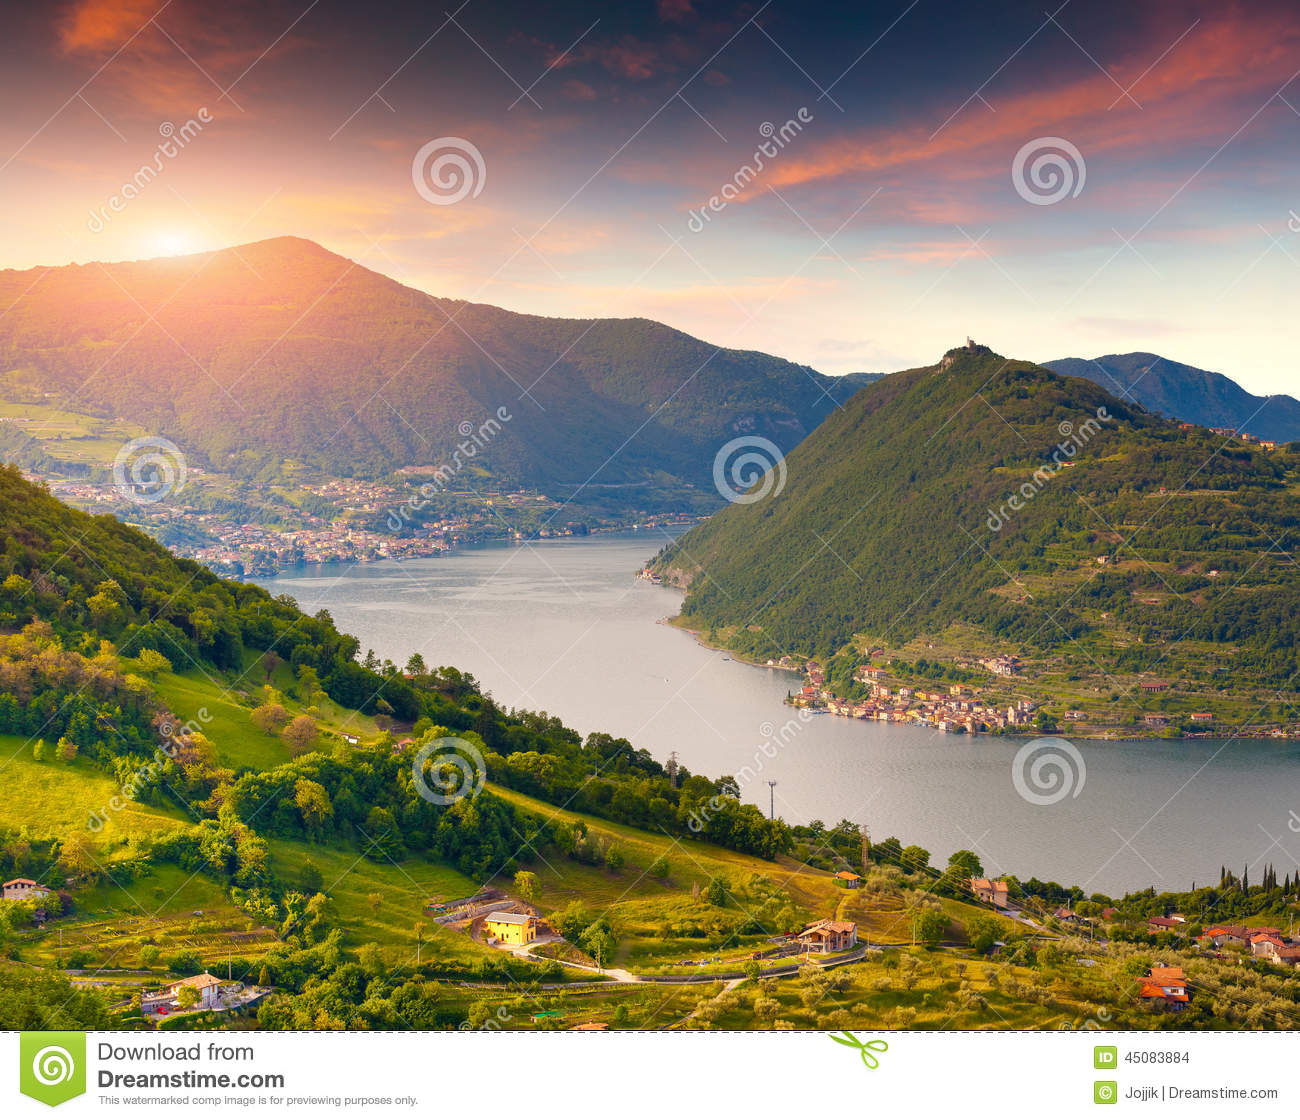 Colorful autumn morning oт the Lake Iseo. Italy, Alps.